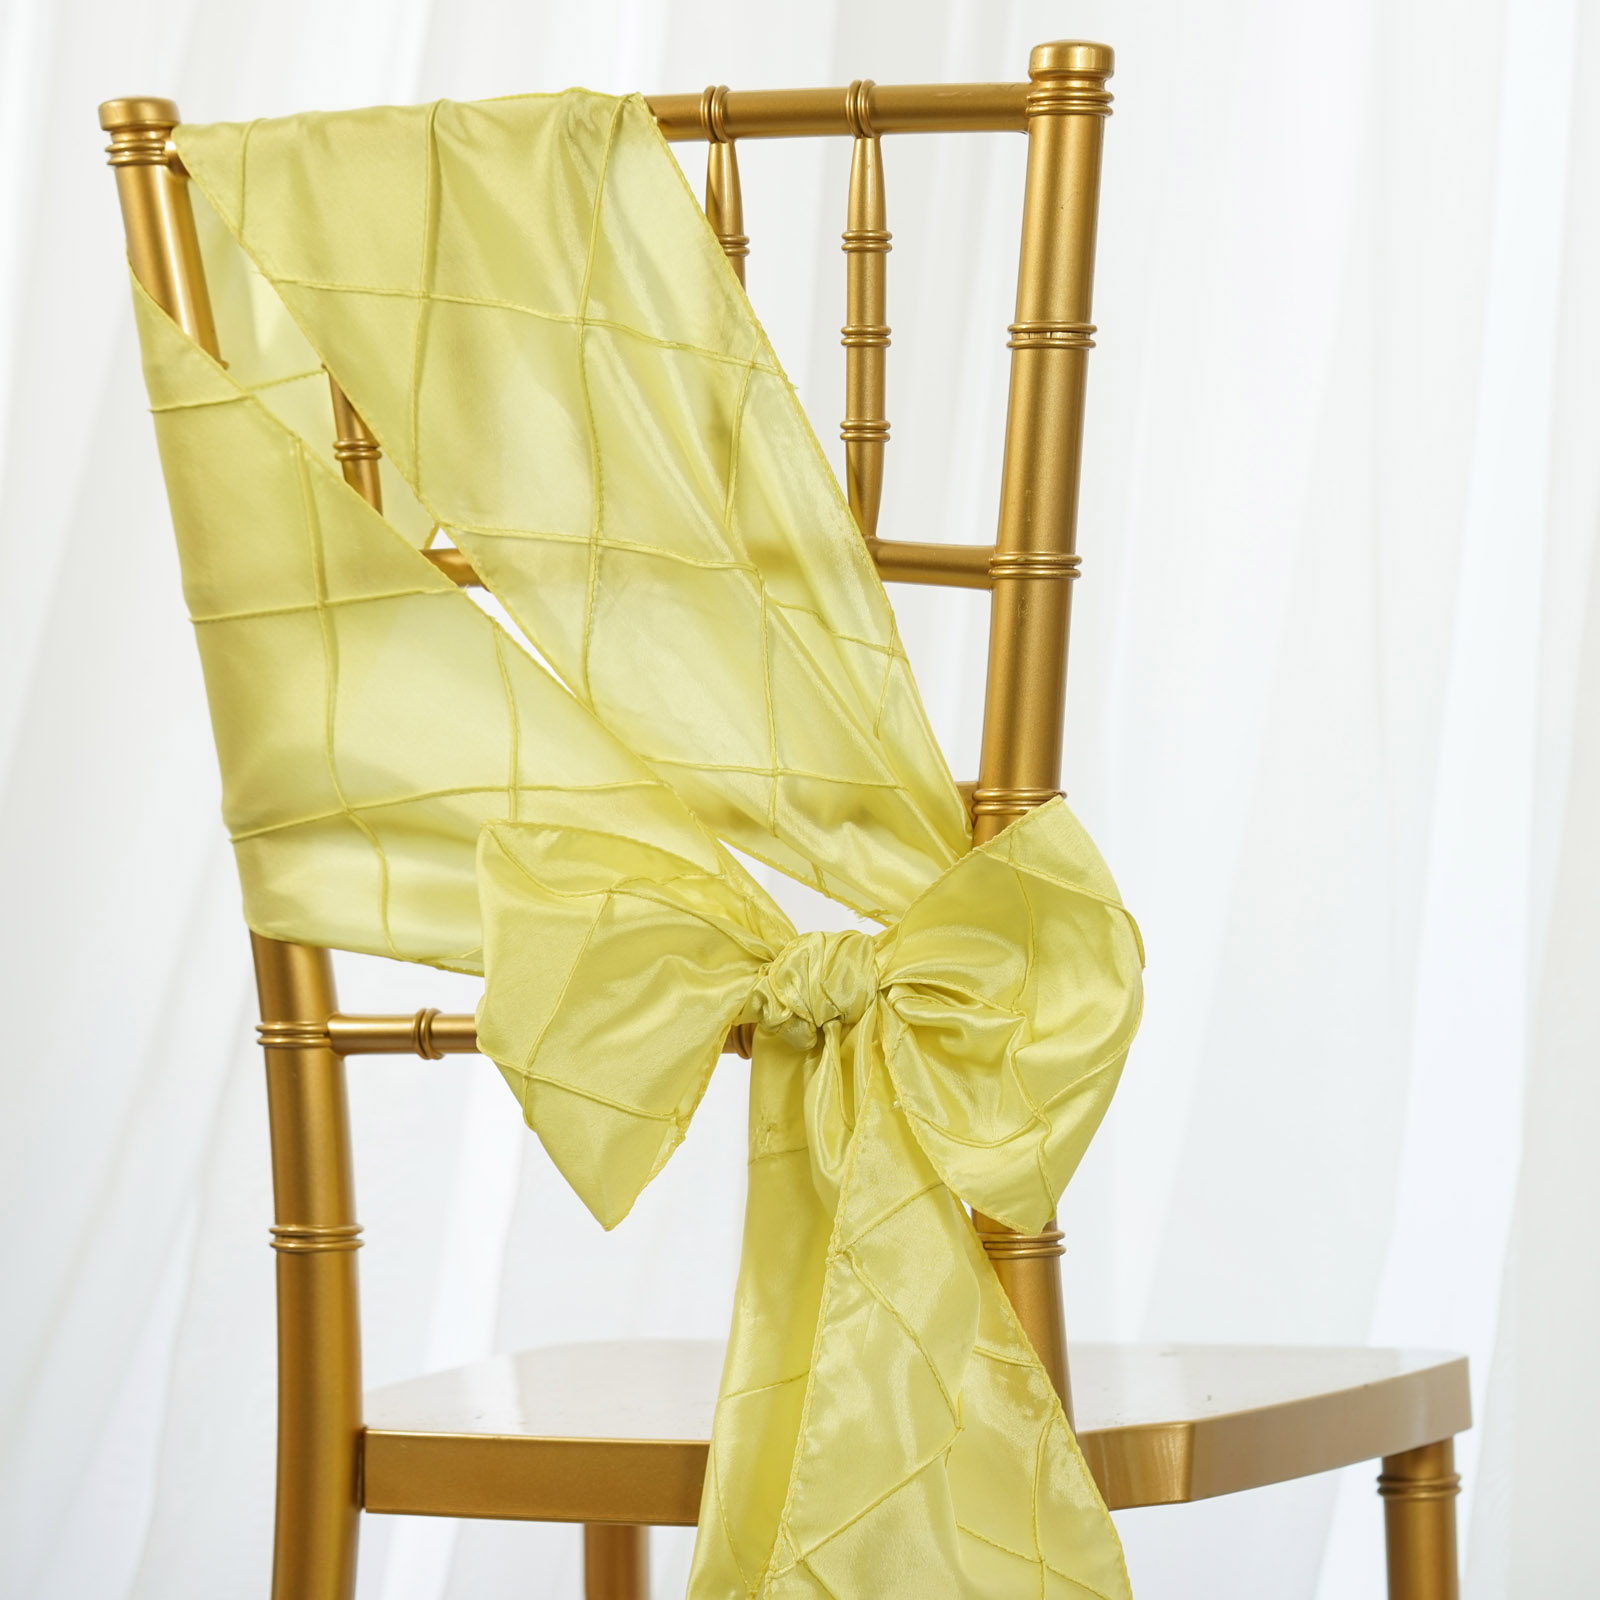 wedding chairs wholesale table linens and chair covers for weddings pintuck sashes bows ties banquet reception